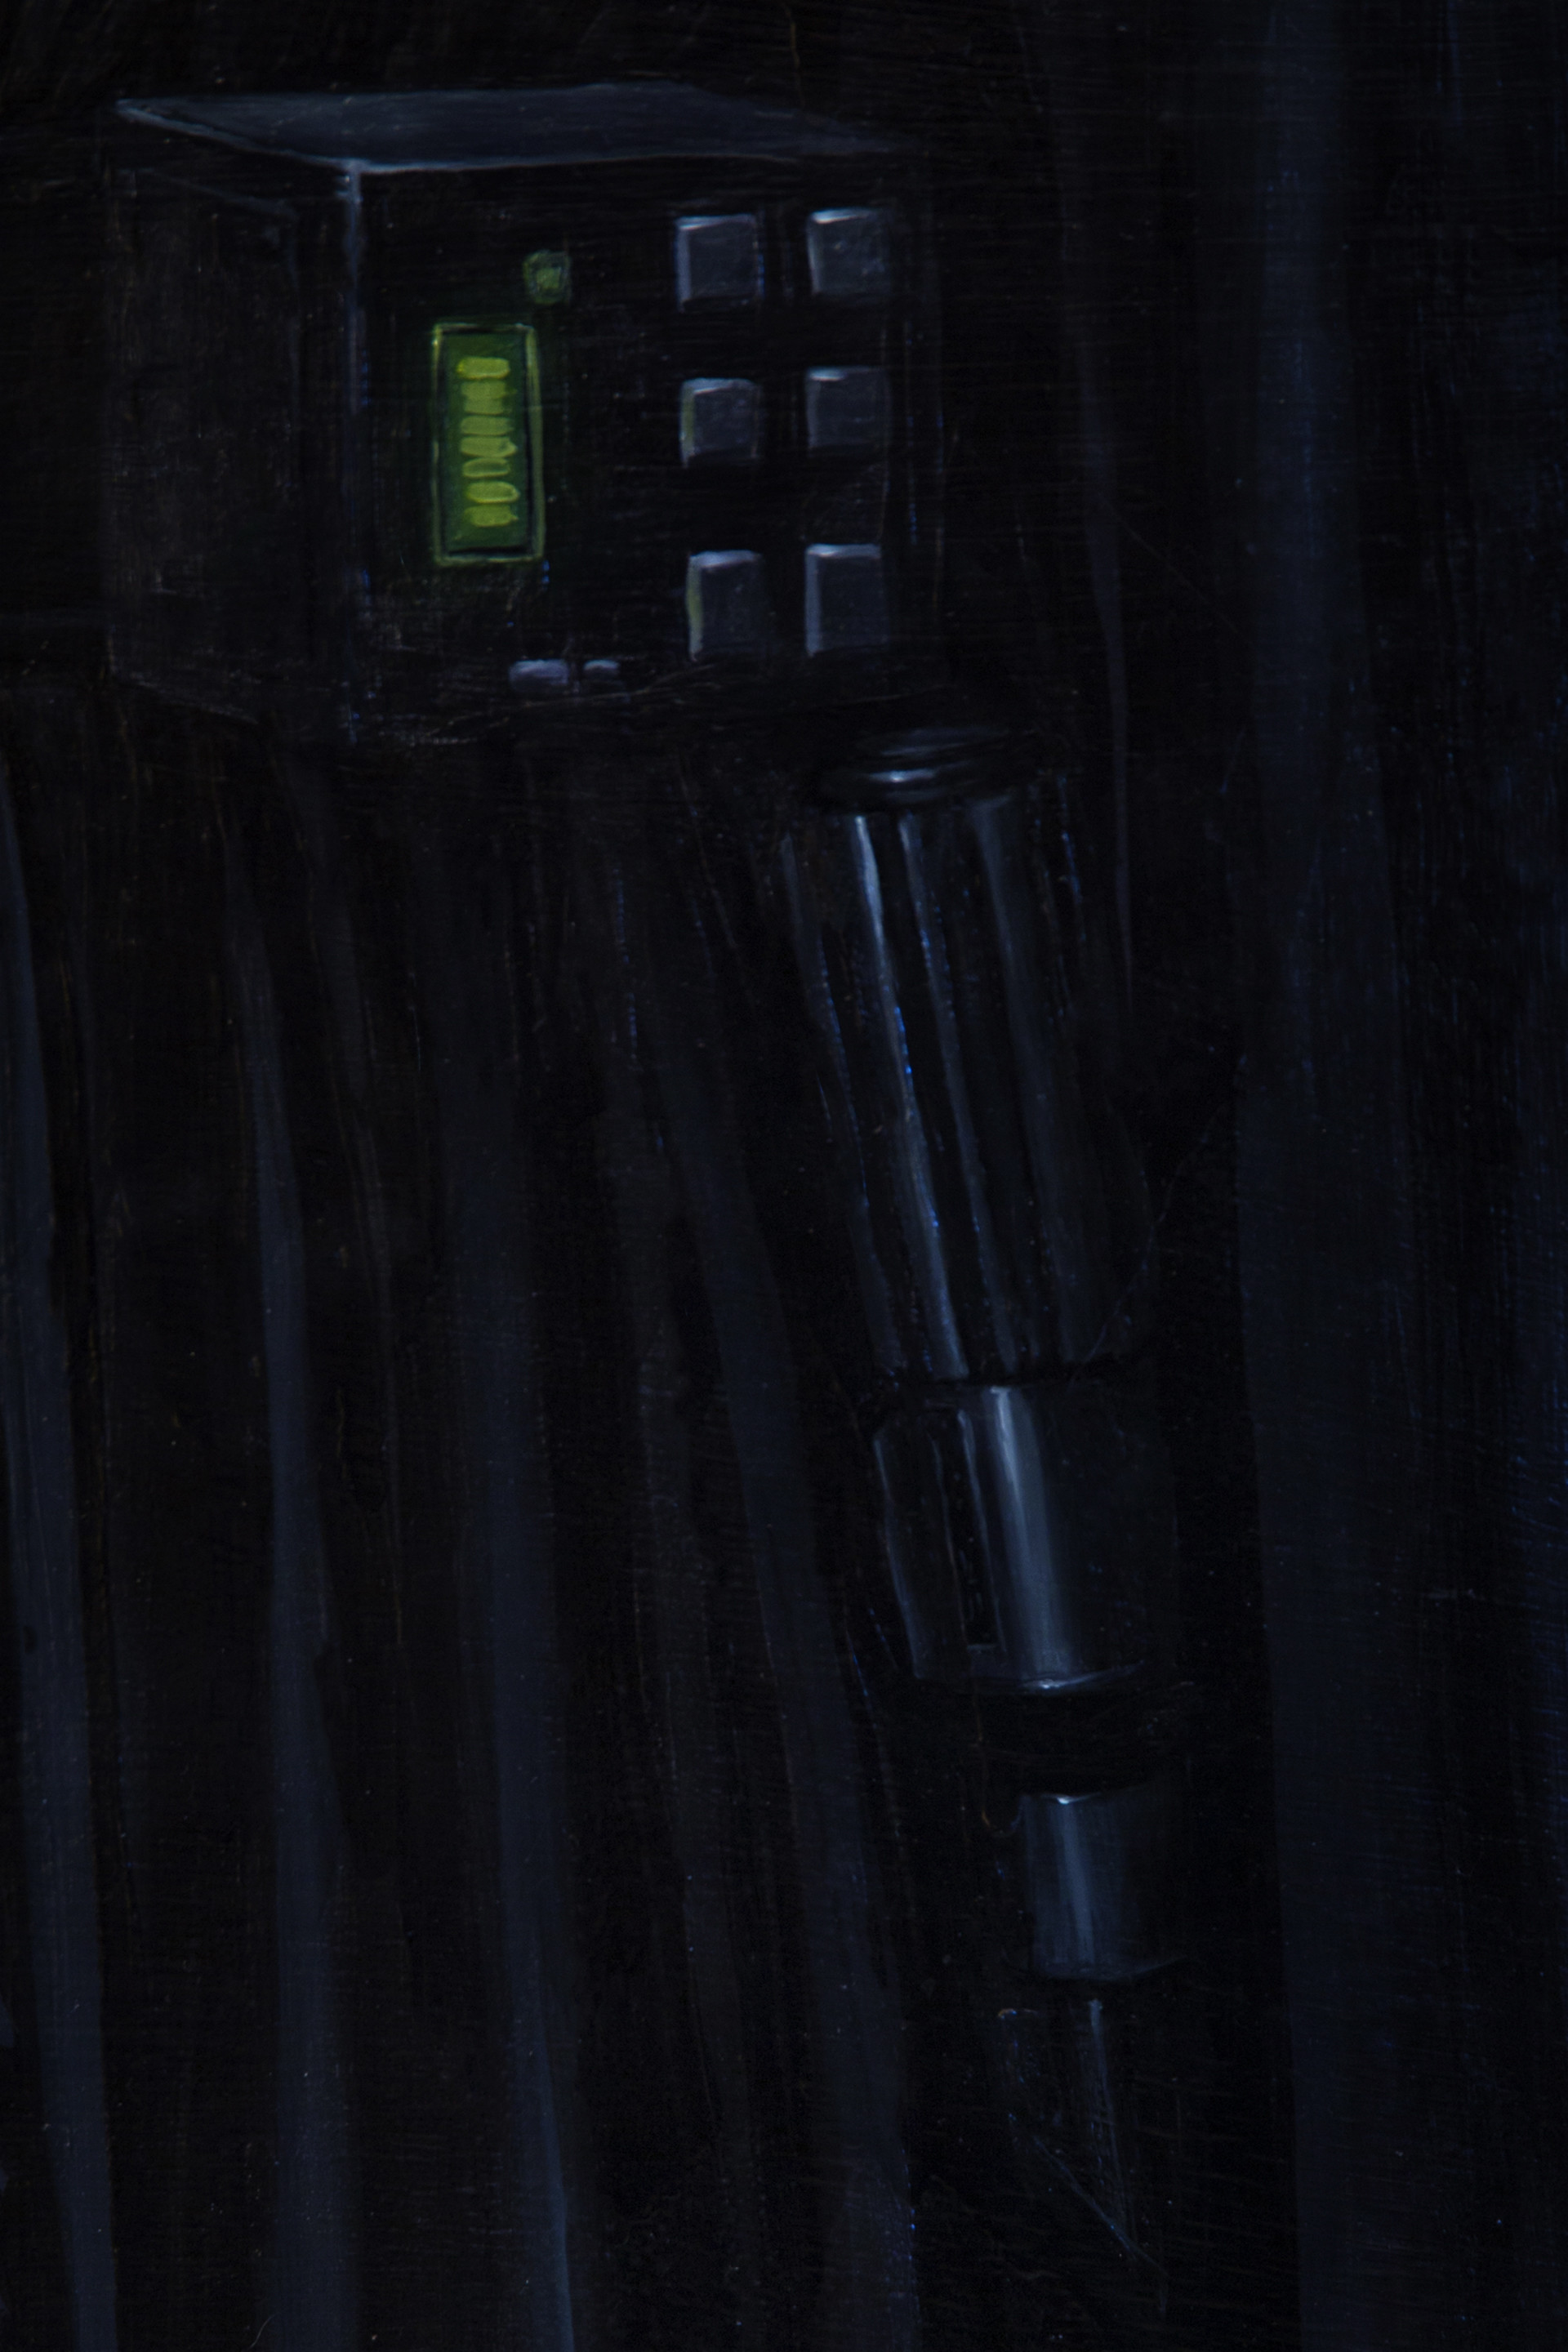 my favourite detail, the lightsaber, this was my favourite part during the process